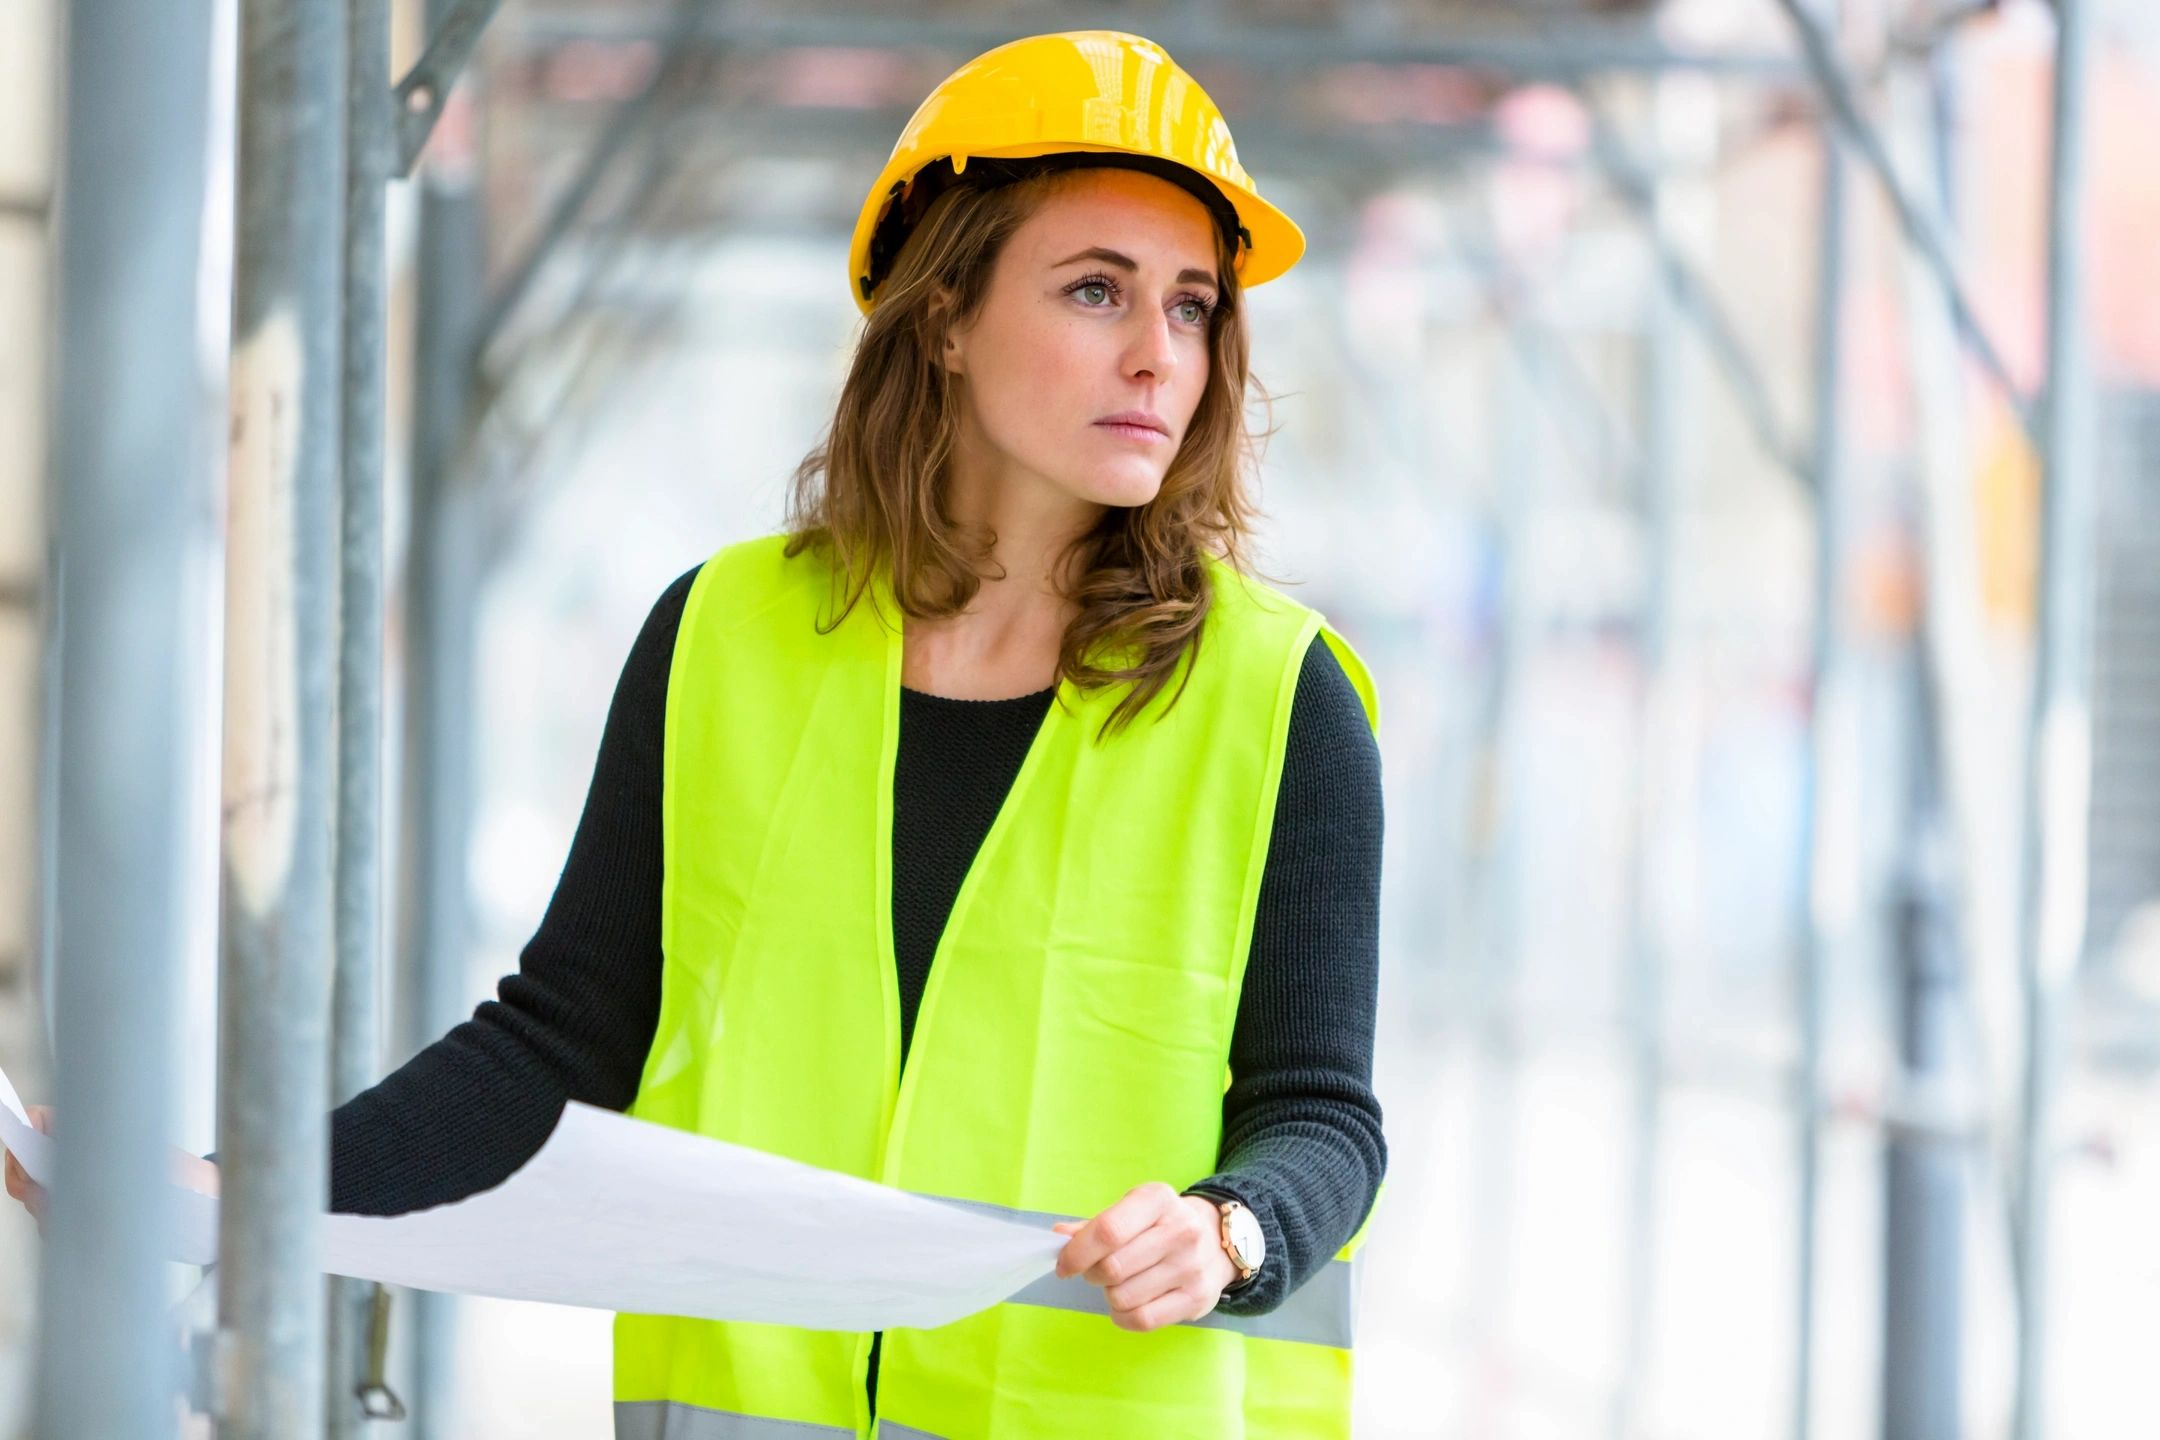 Here's How To Increase The Safety Of Your Workplace